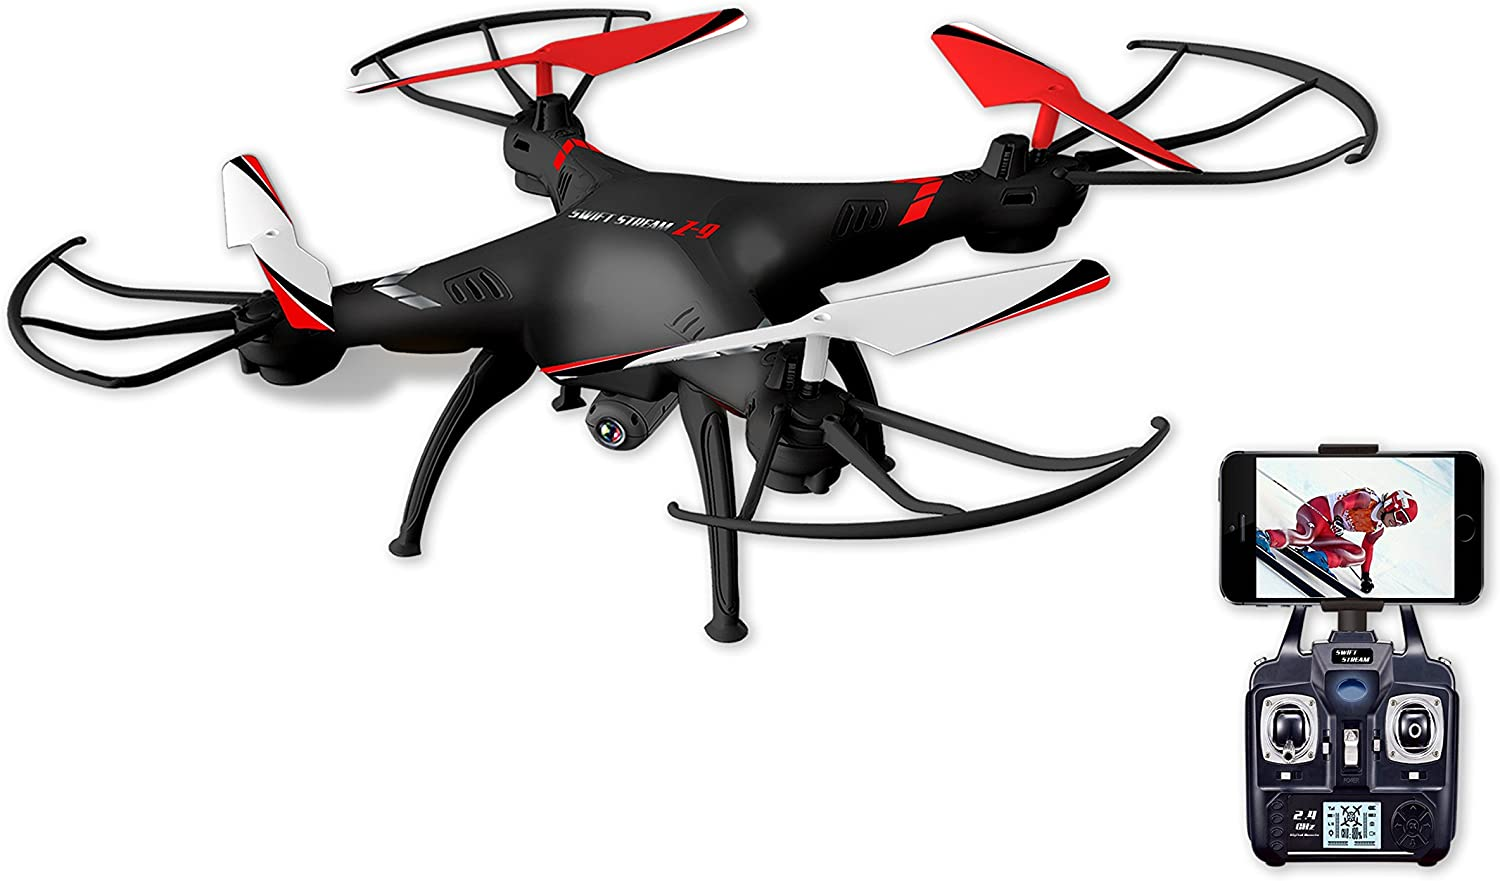 Amazon.com: Swift Stream Z-9 Camera Drone, Black: Toys & Games